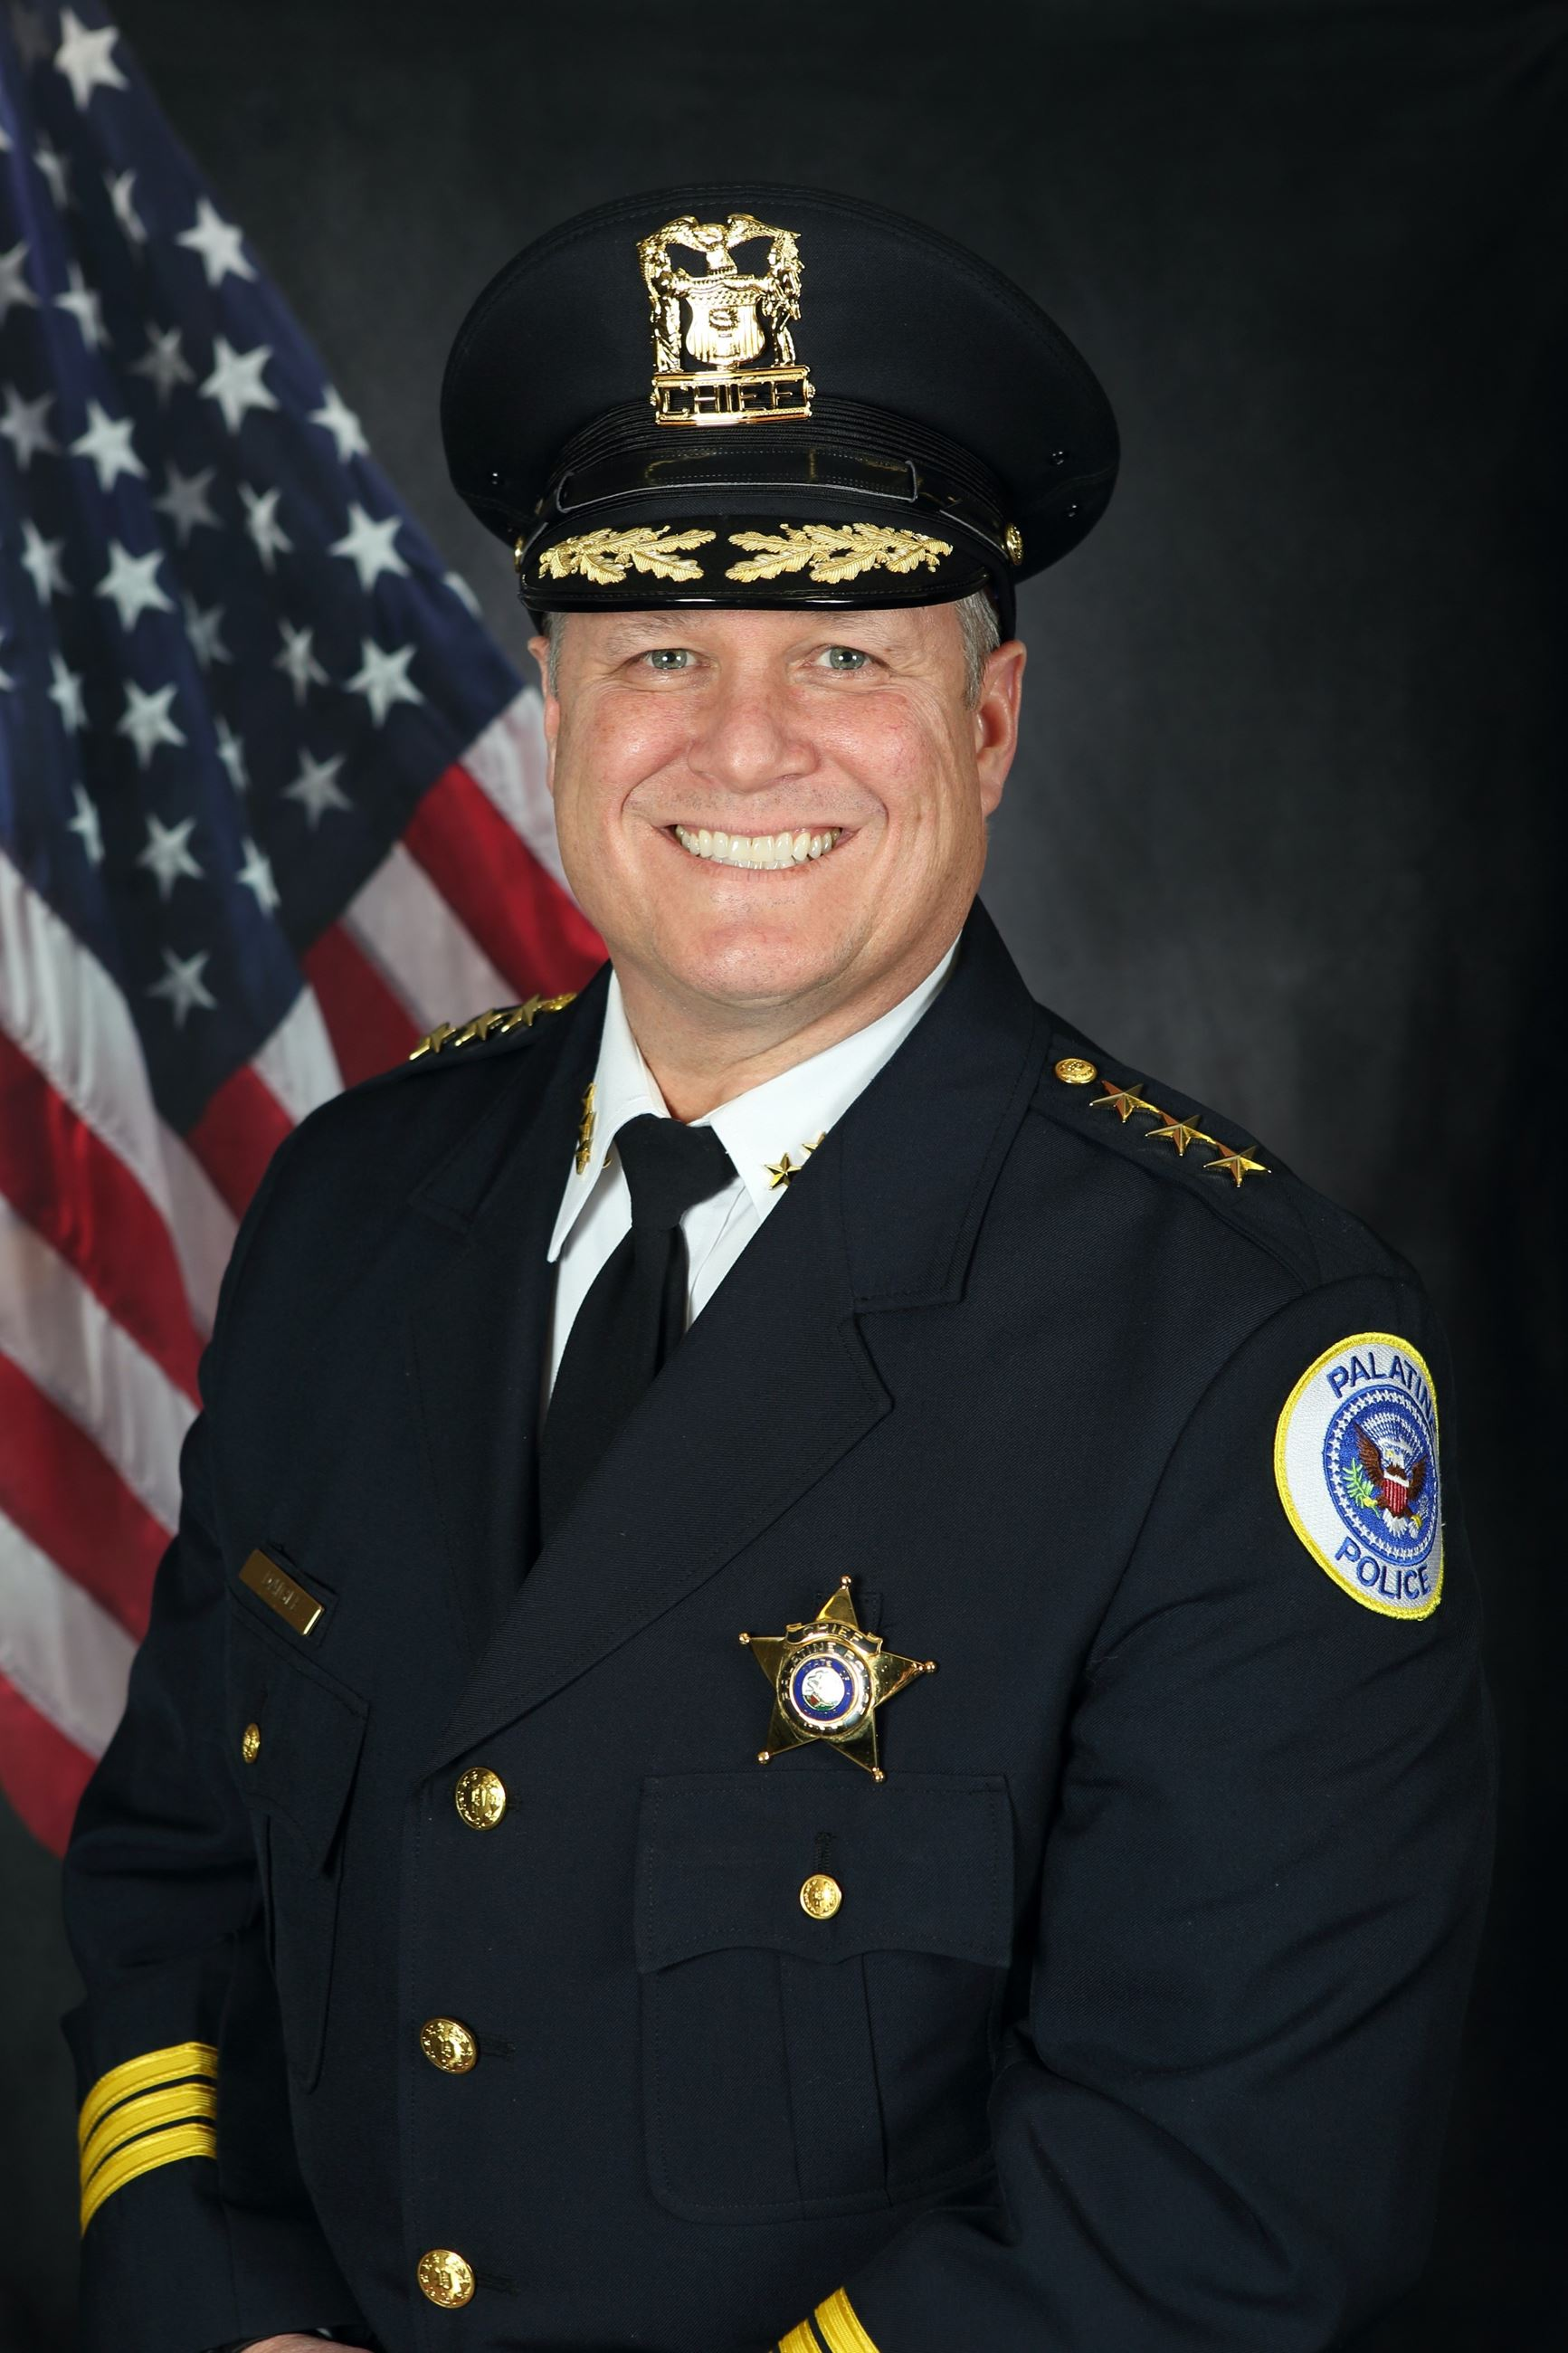 Police Chief Dave Daigle